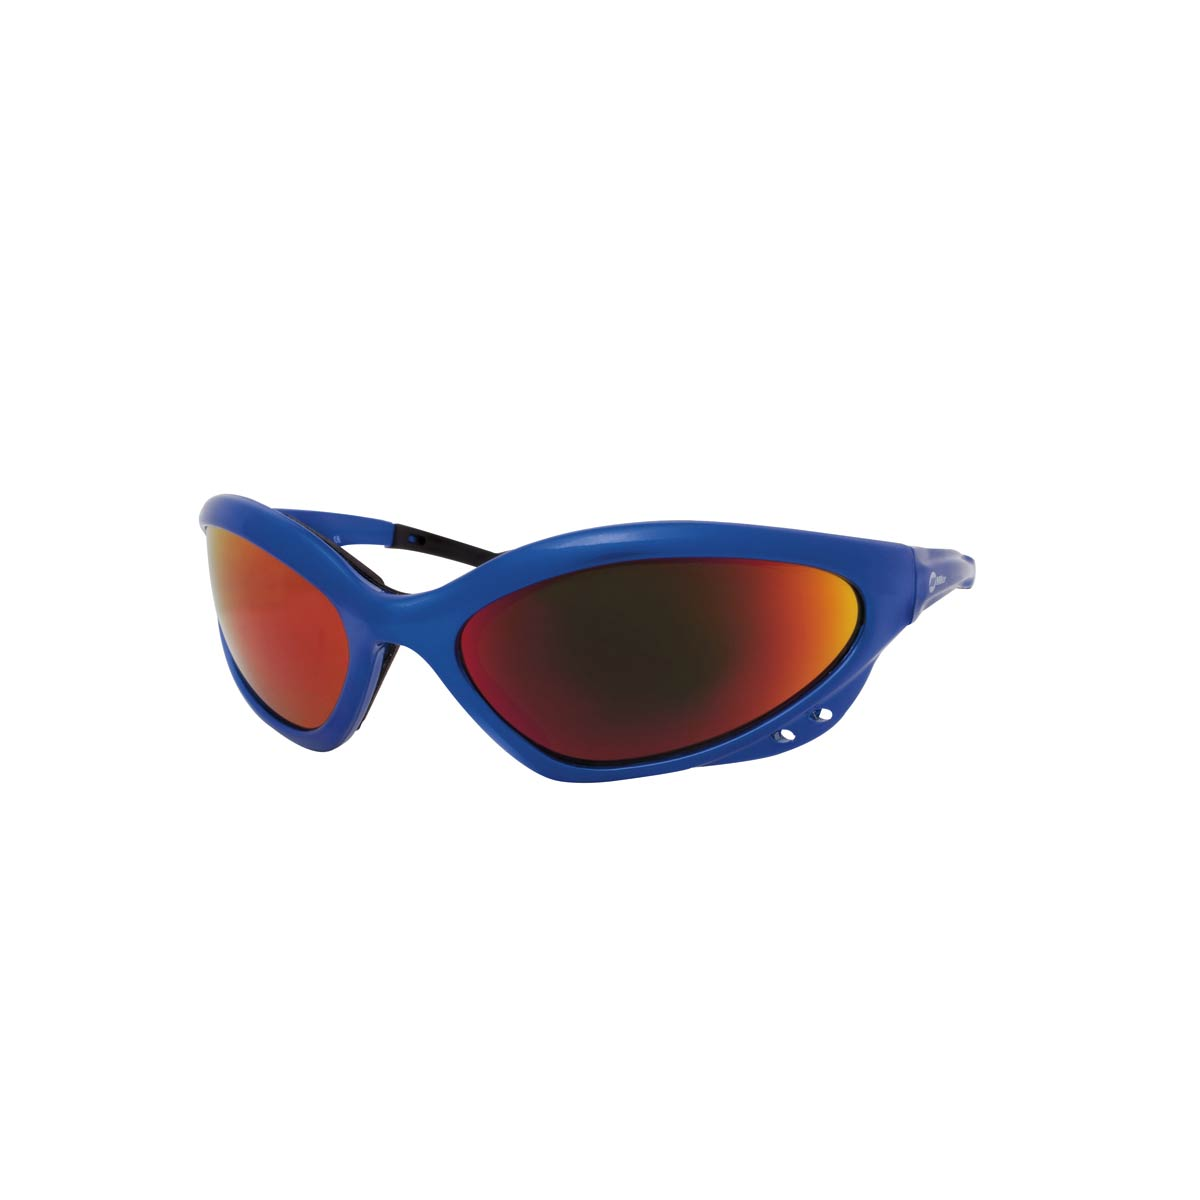 GLASSES SHADE 5/BLUE FRAME. Part: 235657. Pack: 1